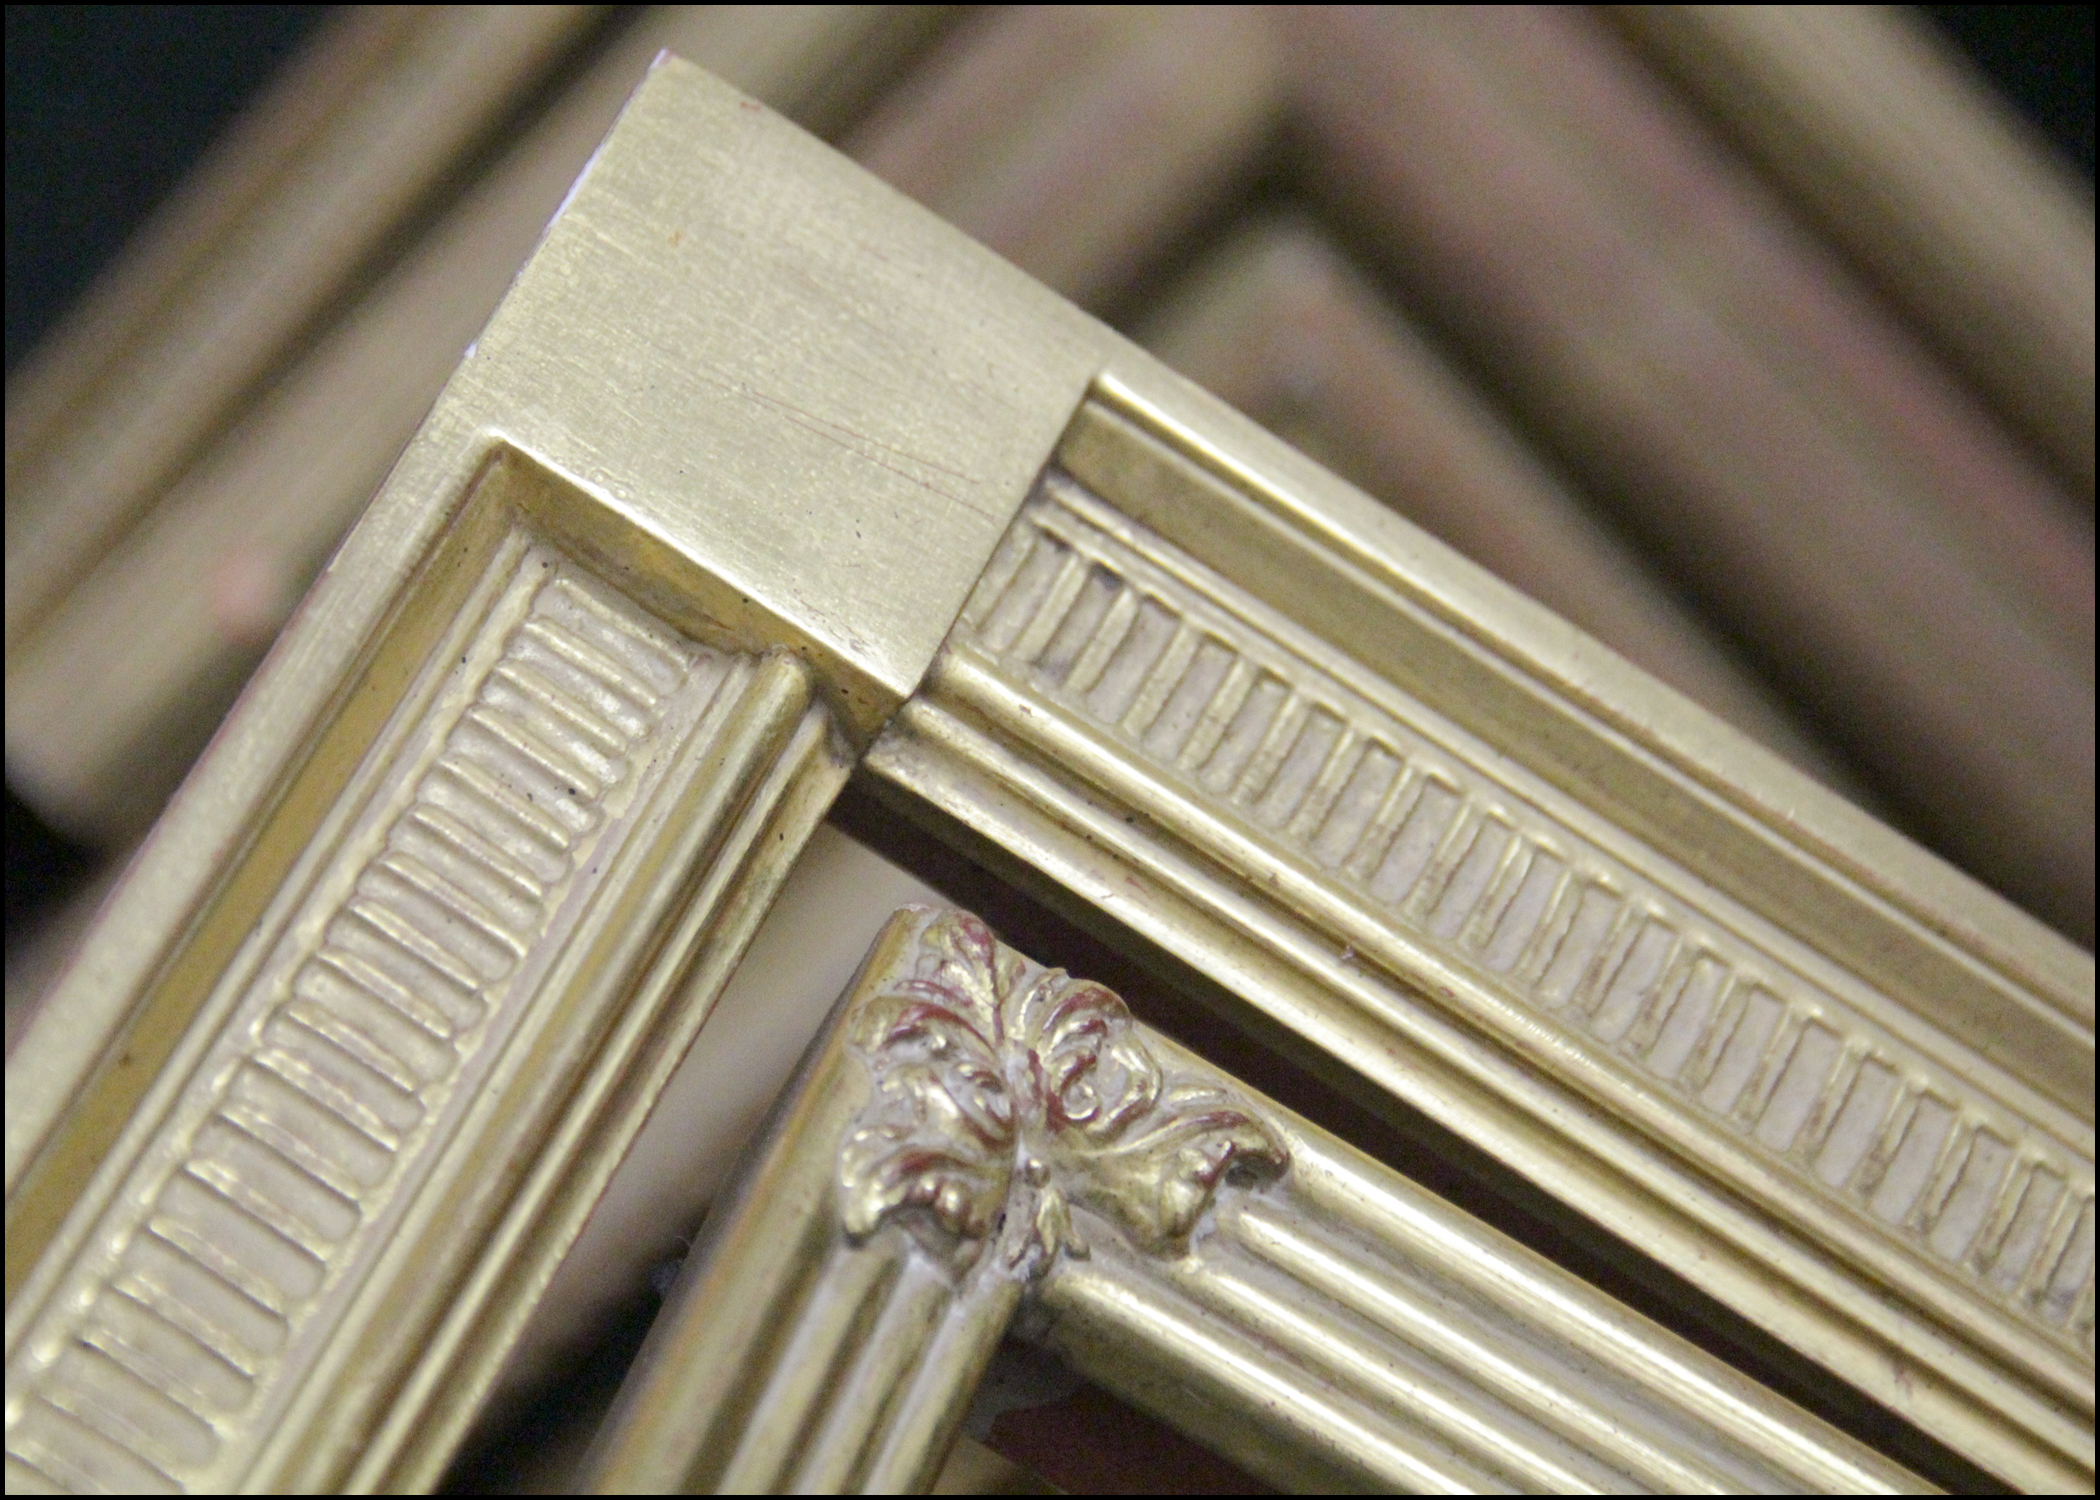 Types Of Picture Frames Pictures to Pin on Pinterest